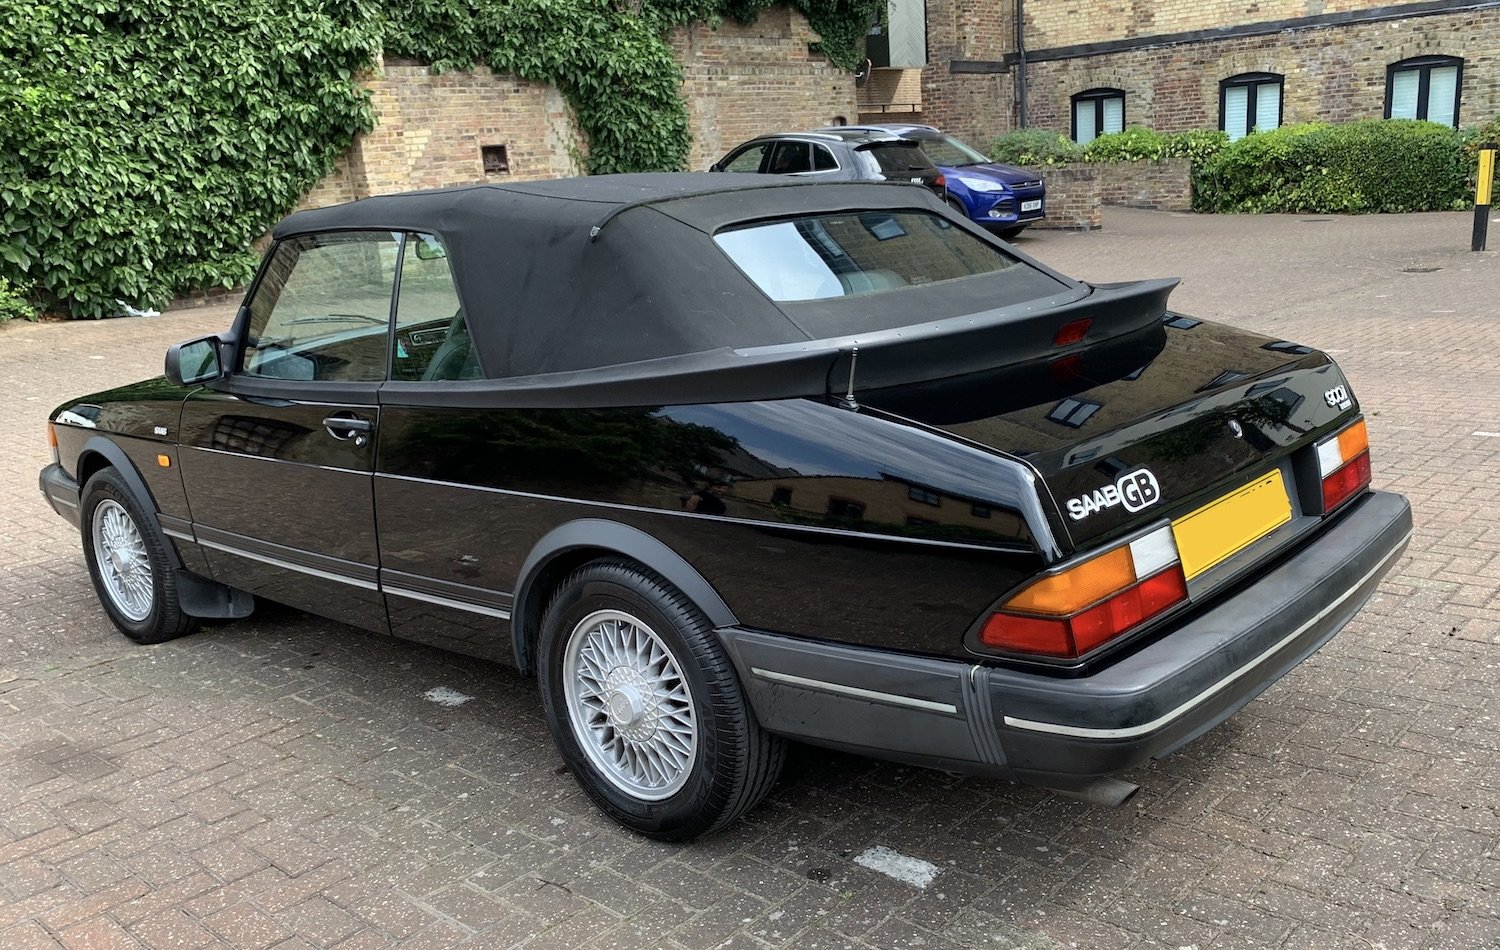 1992 Classic Saab 900i convertible in superb condition For Sale (picture 2 of 6)